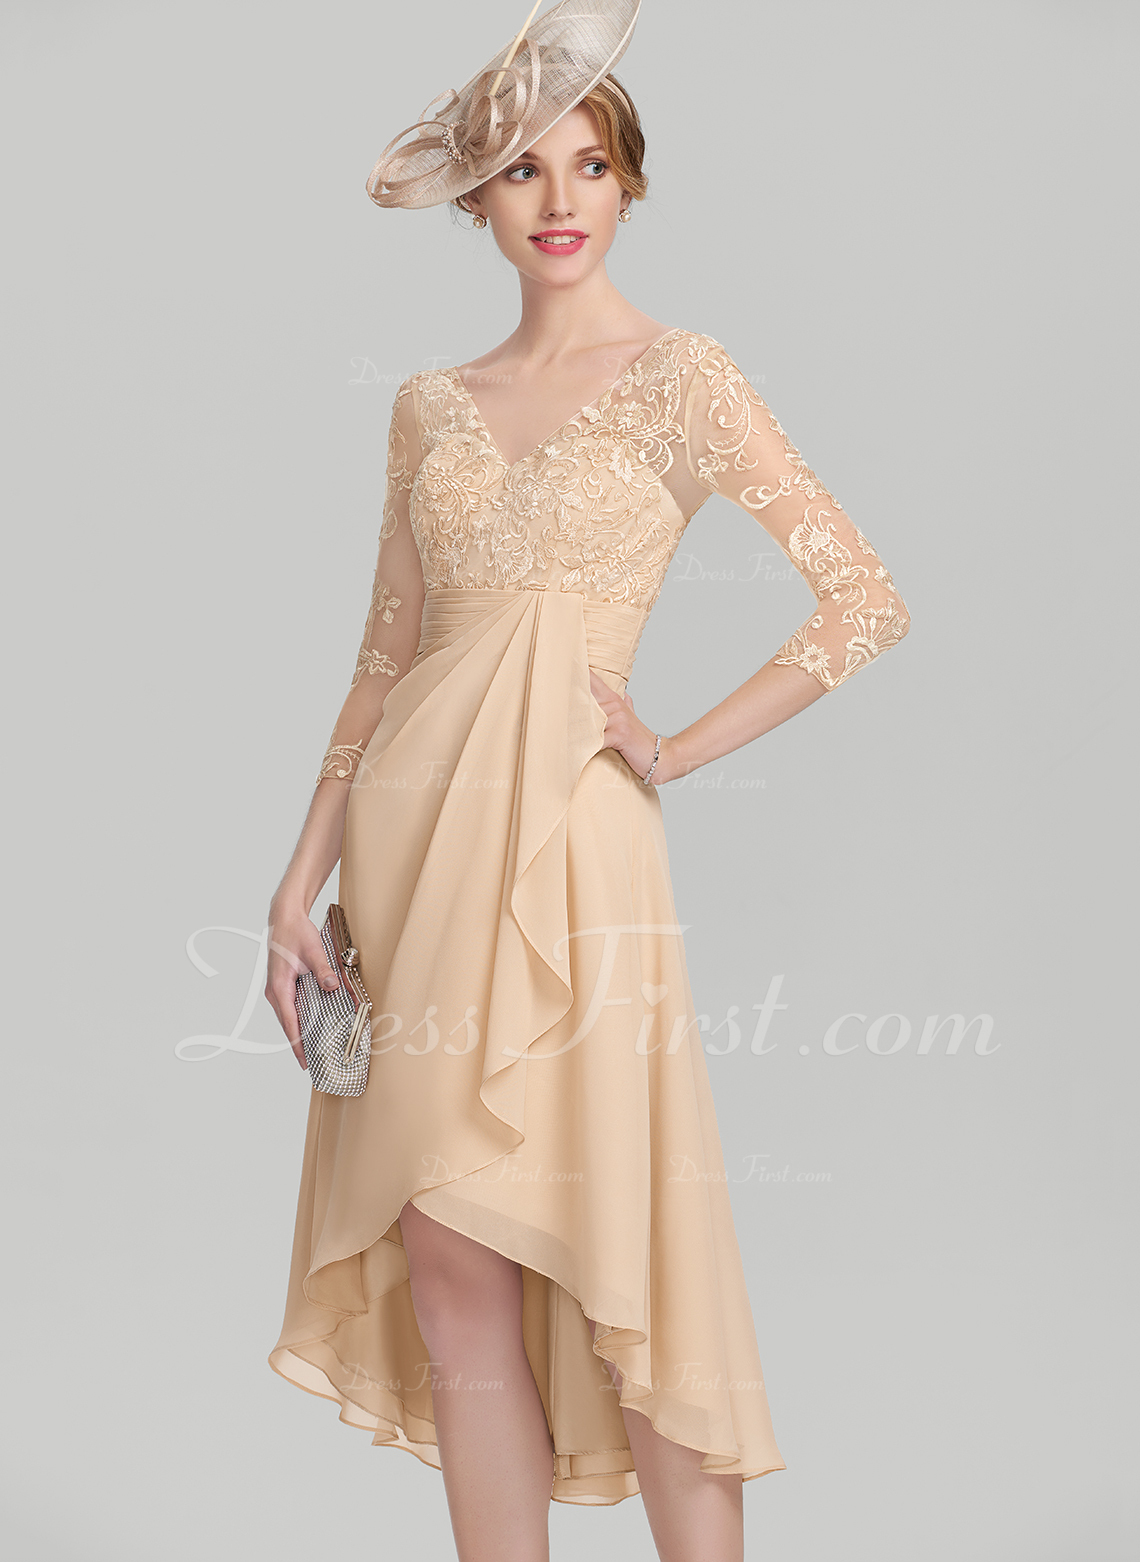 741badb8bc Loading zoom. Loading. Color: Champagne. A-Line/Princess V-neck  Asymmetrical Chiffon Lace Mother of the Bride Dress With Cascading ...